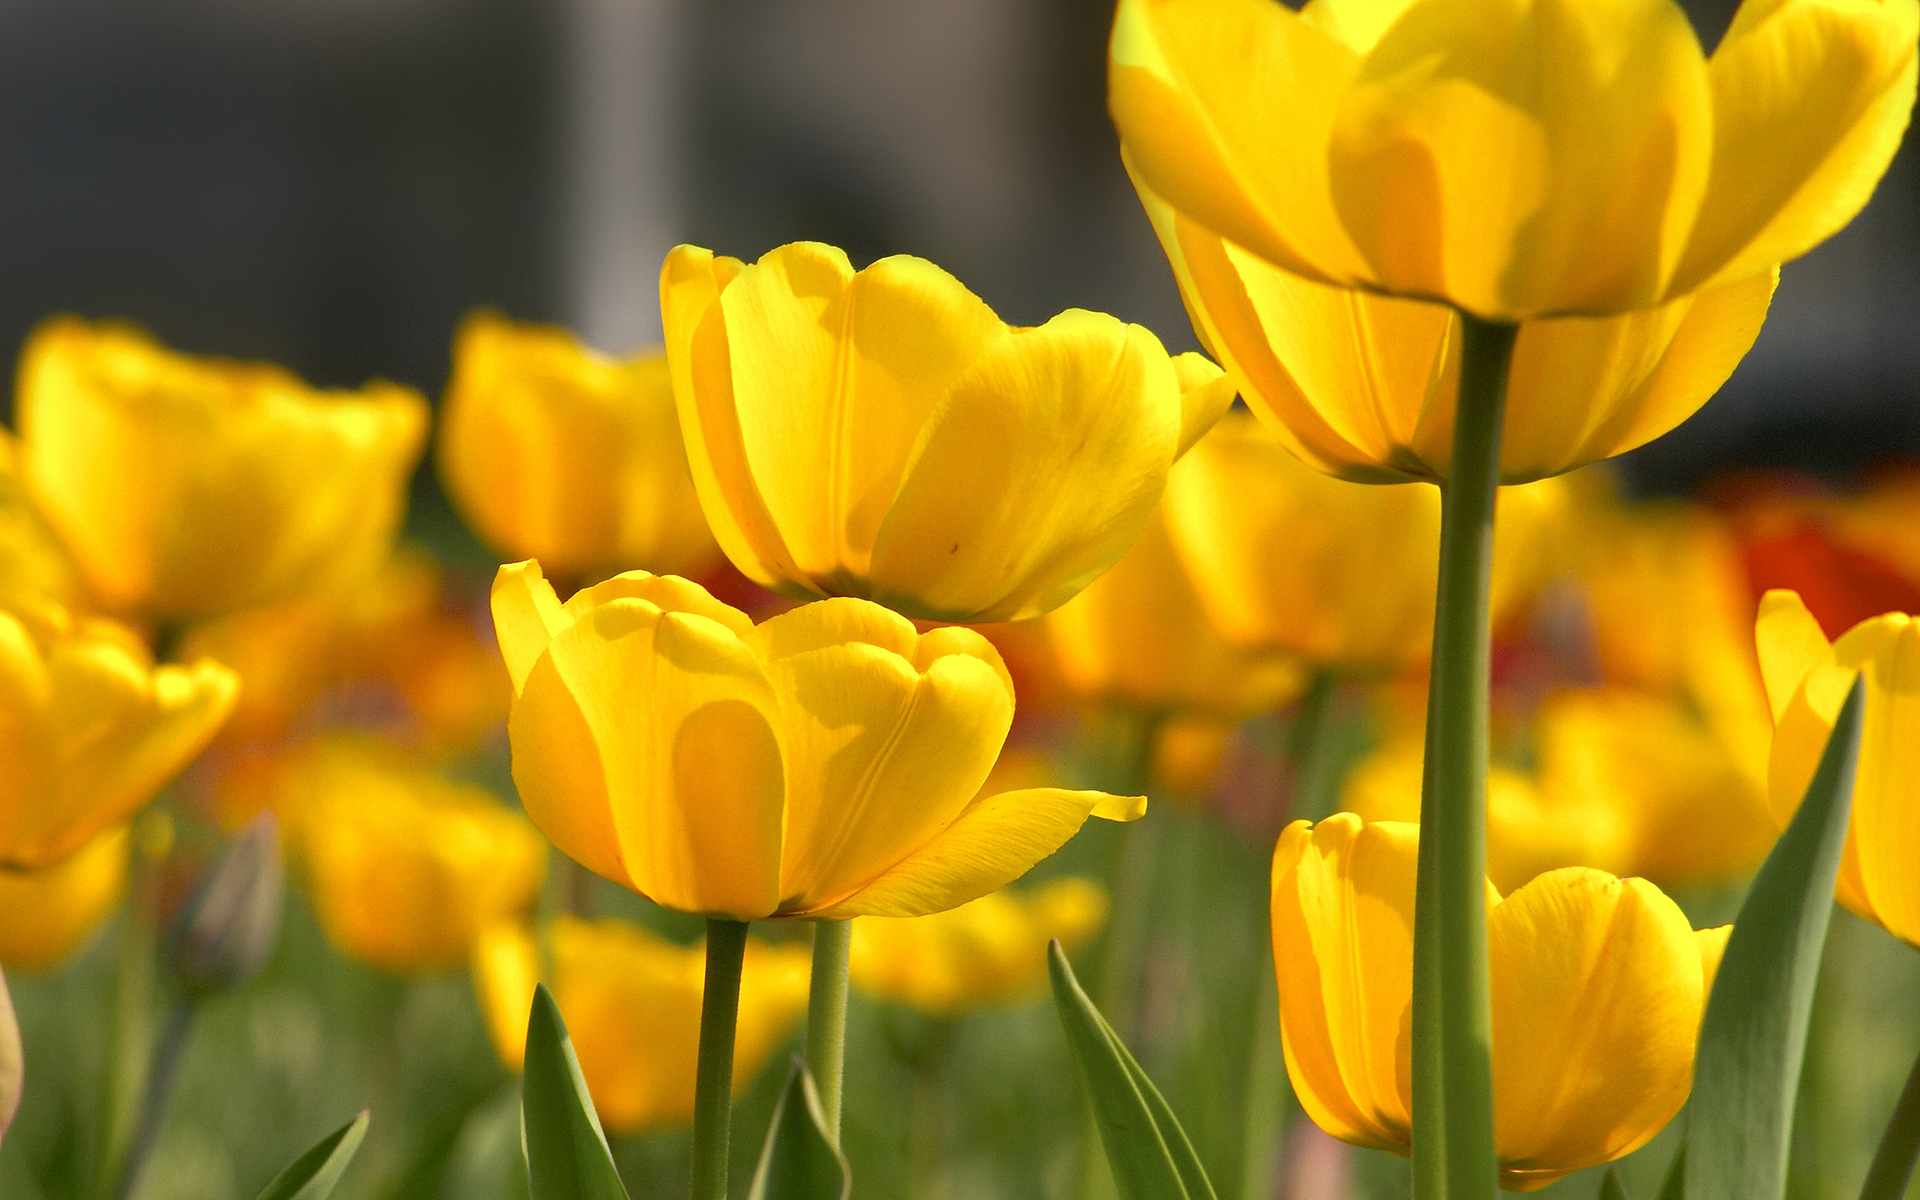 yellow flowers wallpapers pack - photo #19